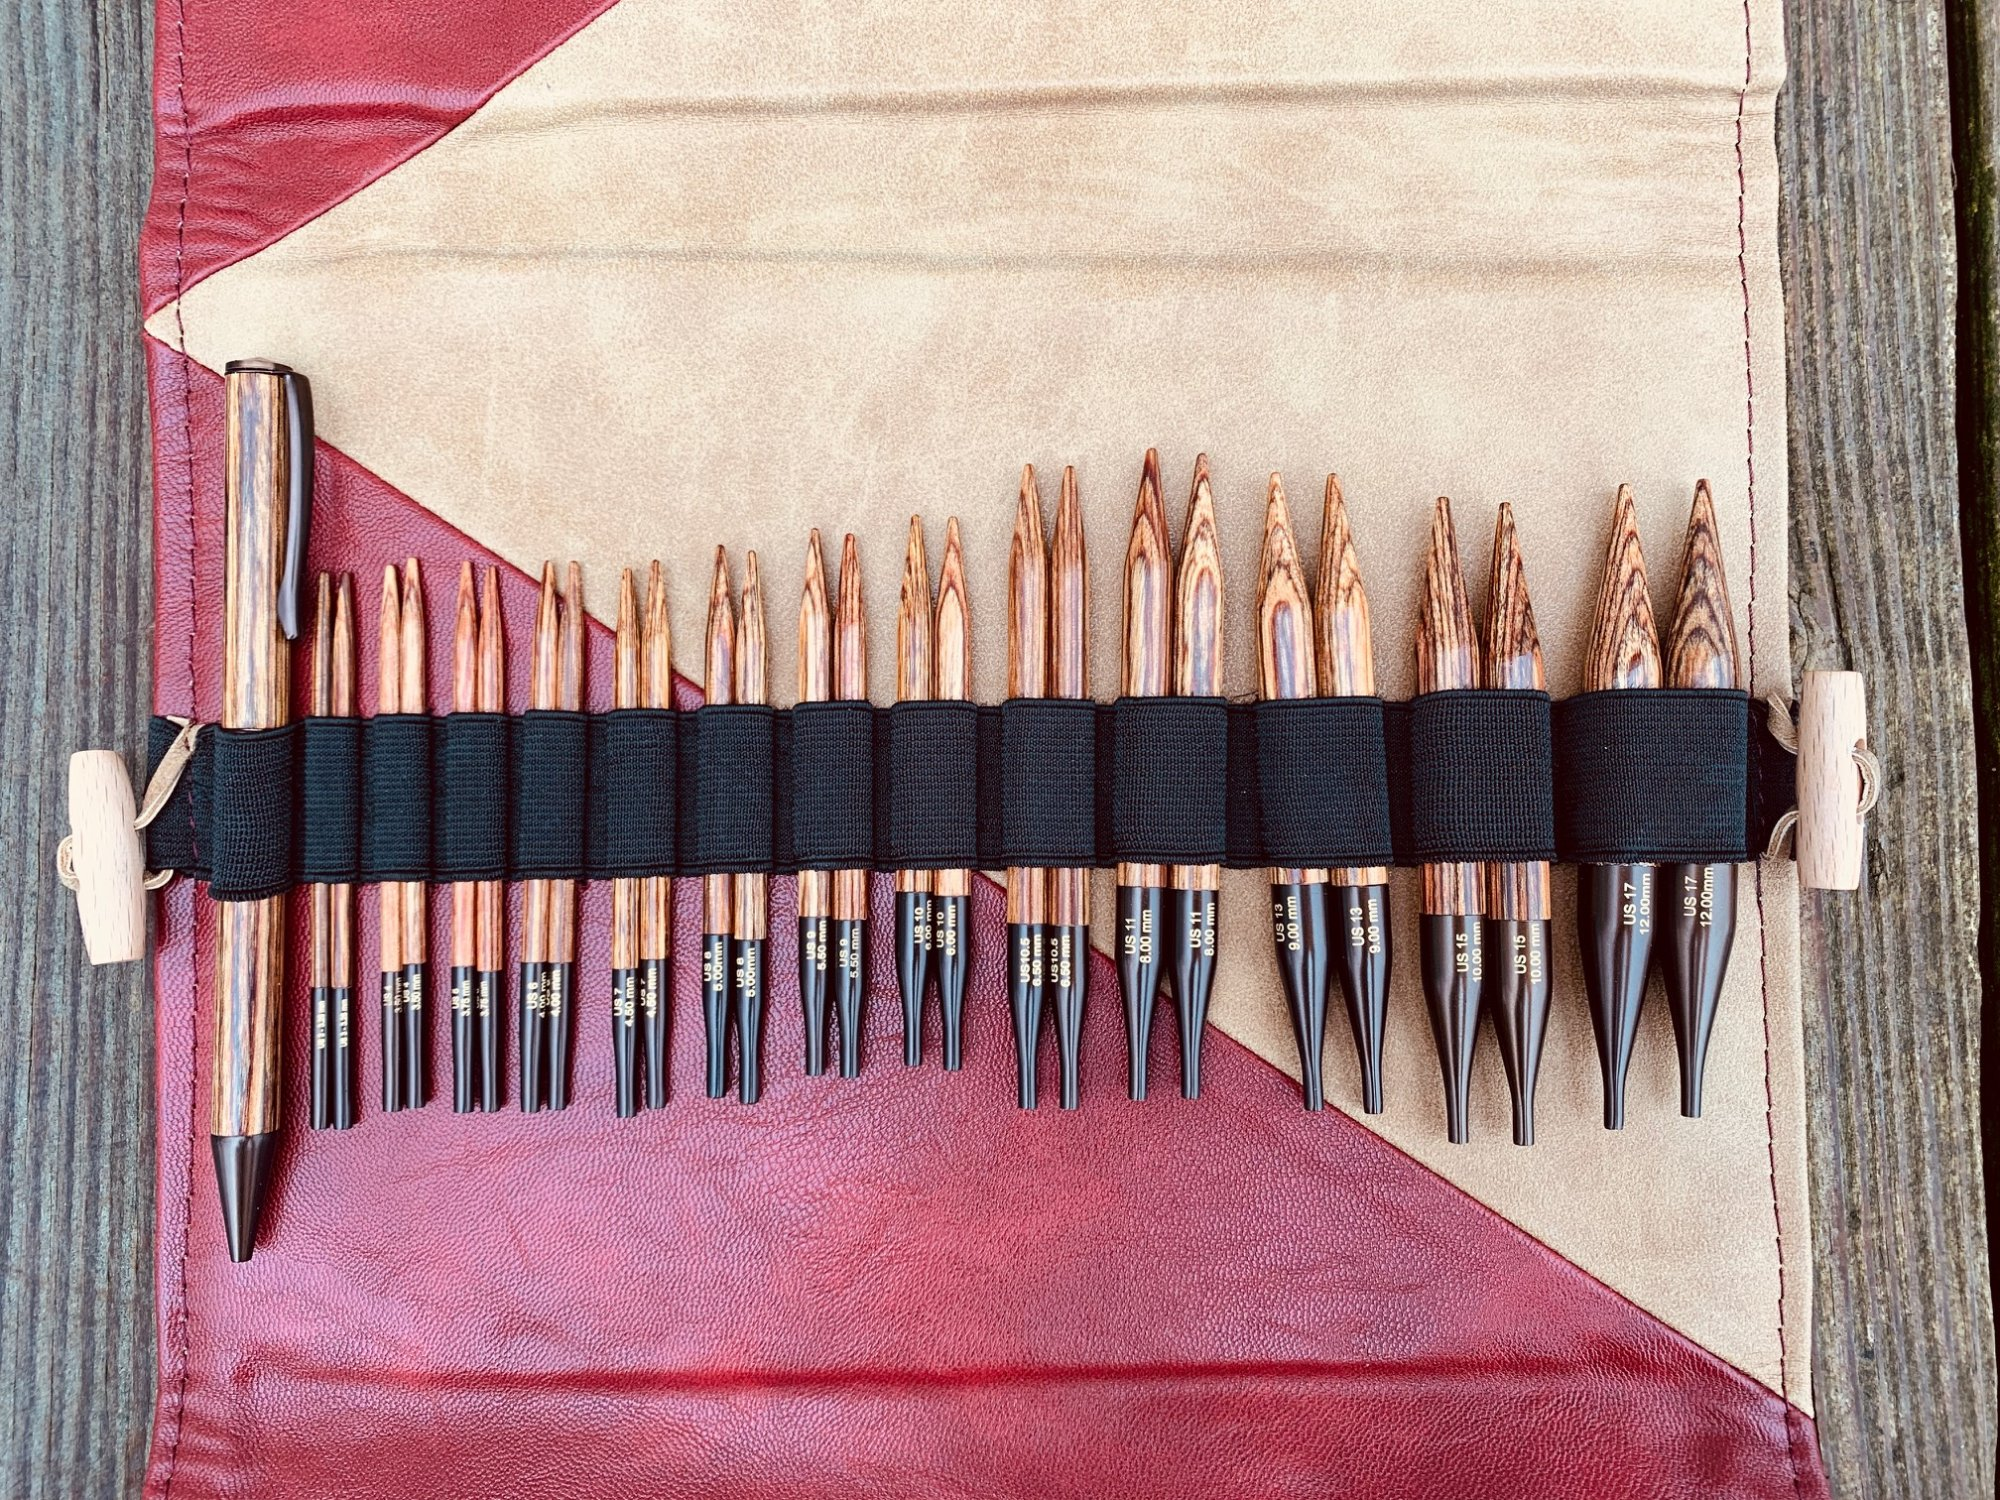 Ginger Special Interchangeable Knitting Needle Set